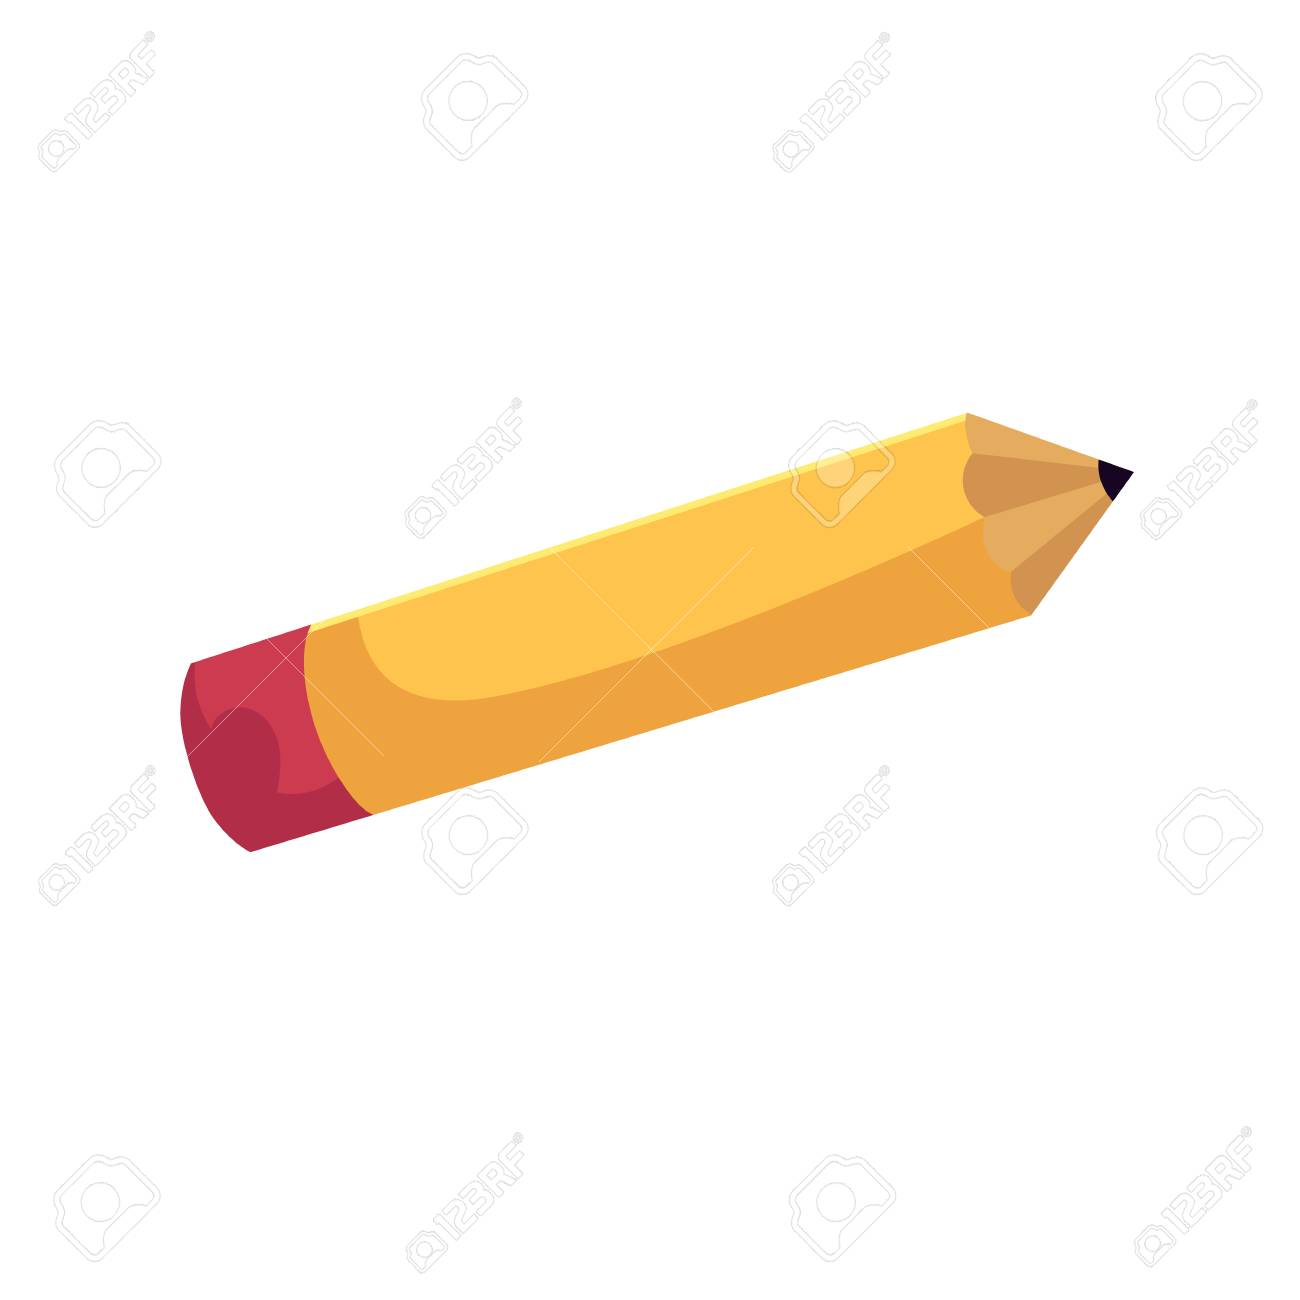 vector flat cartoon school yellow red colored sharpened pencil